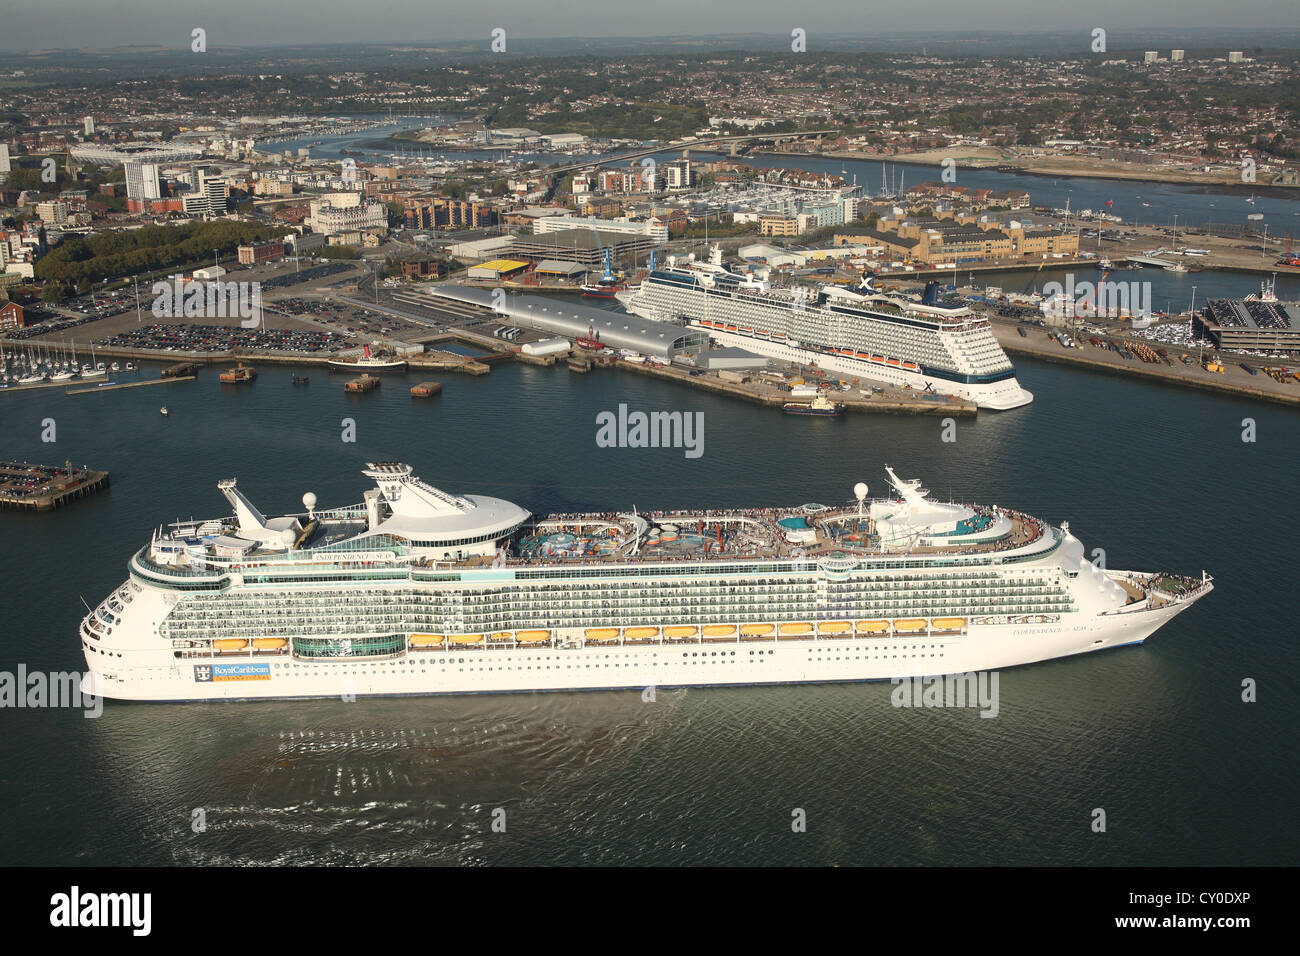 Independence Of The Seas passes Celebrity Eclipse in the port of Southampton. Aerial photos. - Stock Image